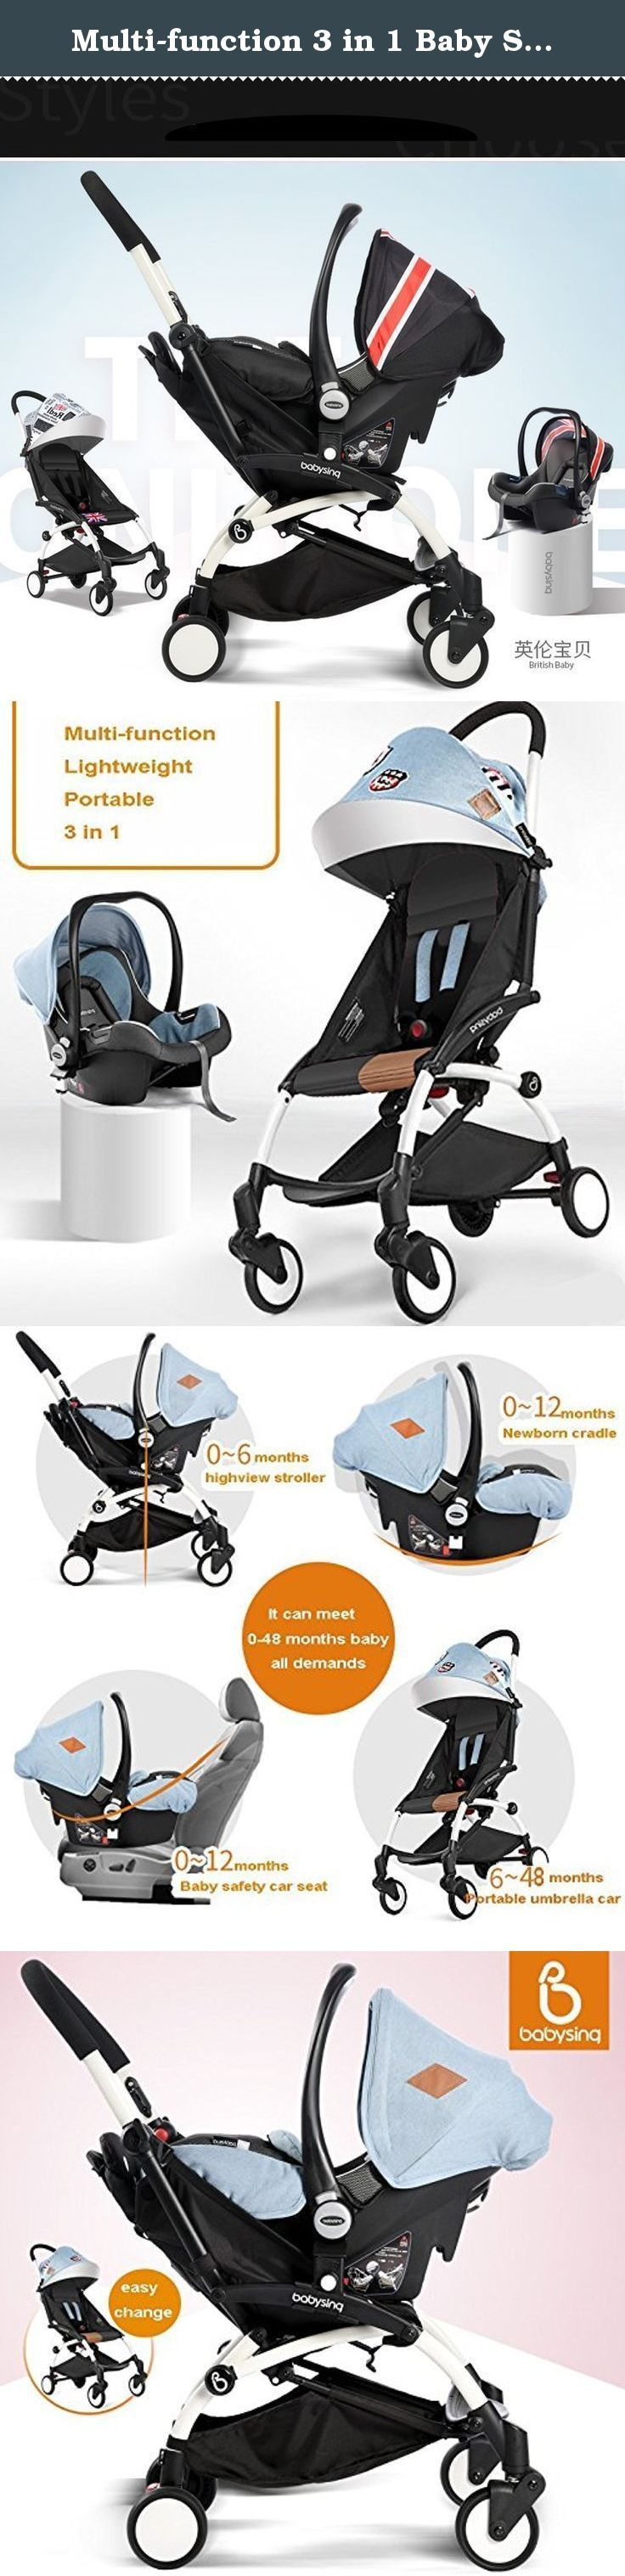 Multi-function 3 in 1 Baby Stroller (Standard stroller+ Cradle+ Safety Car Seat) Super-light, Portable, Folding Stroller for Baby from 0 to 4 Years Old (British baby). Some Specials of Our Commodity 1:Our strollers are with higher ground clearance than others, which can protect you baby from the air pollution and can have a broad view. 2:Our product with the the suspension function can protect the baby from shake which is harmful for the brain. 3:Wide age group from 0~6 years old If you…